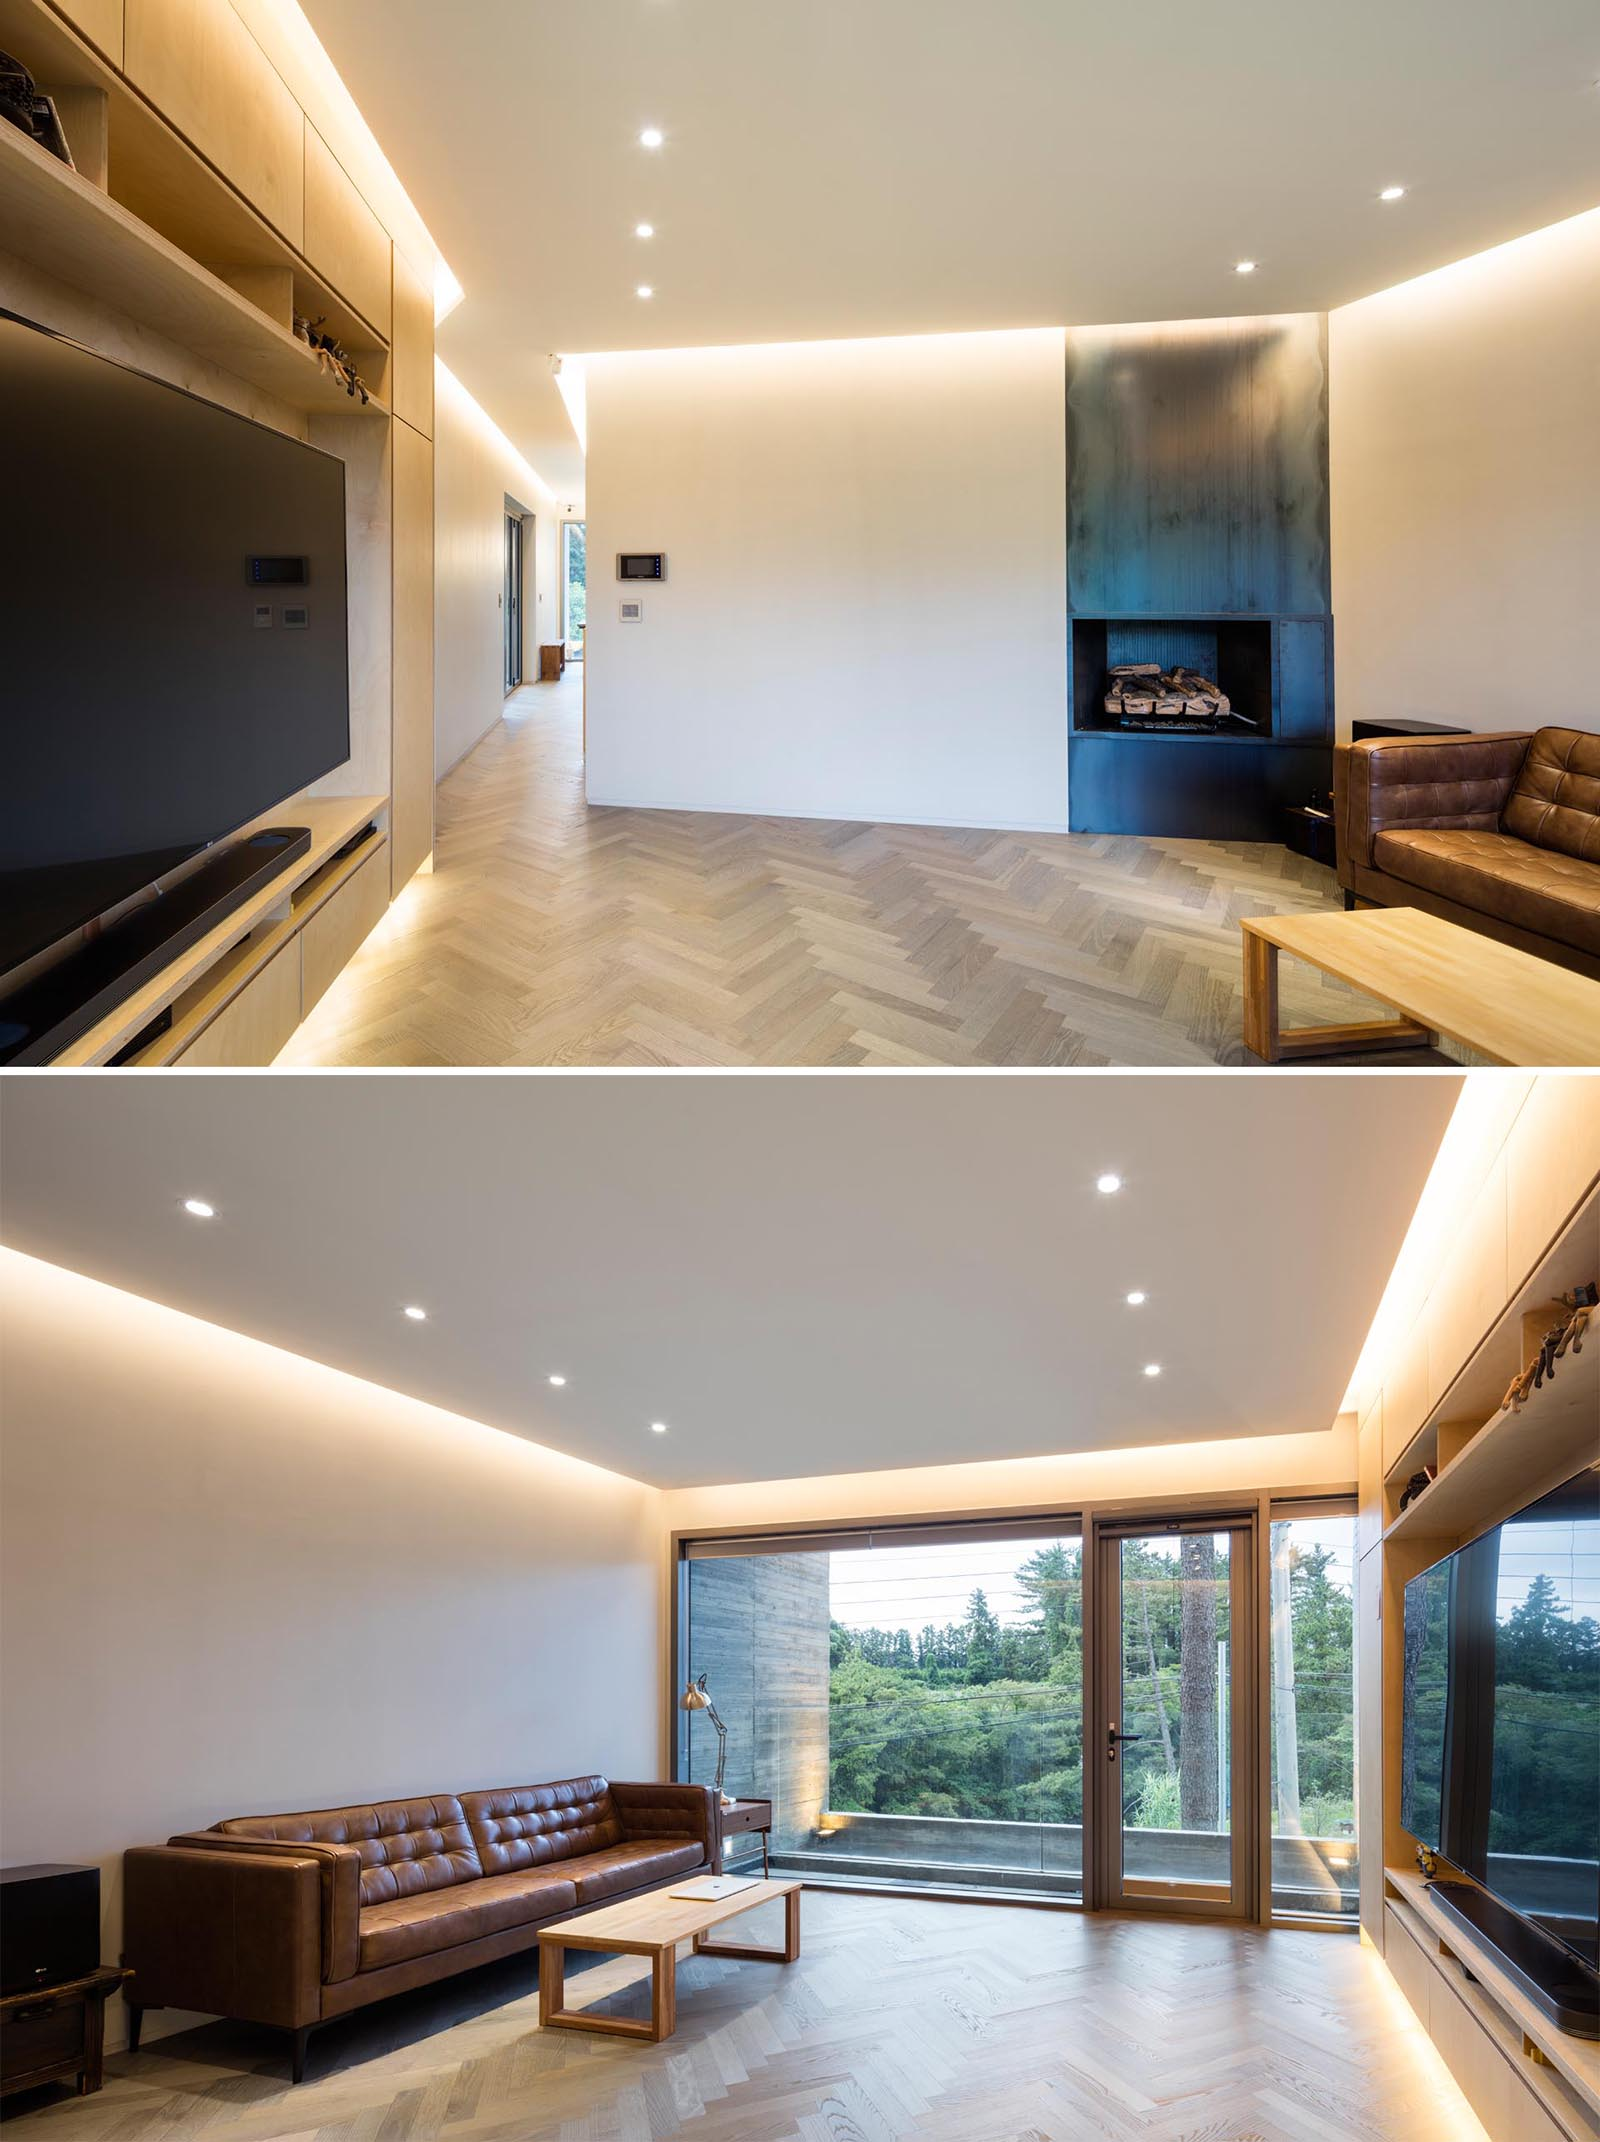 A modern living room with white walls and ceilings, wood flooring, and hidden lighting.